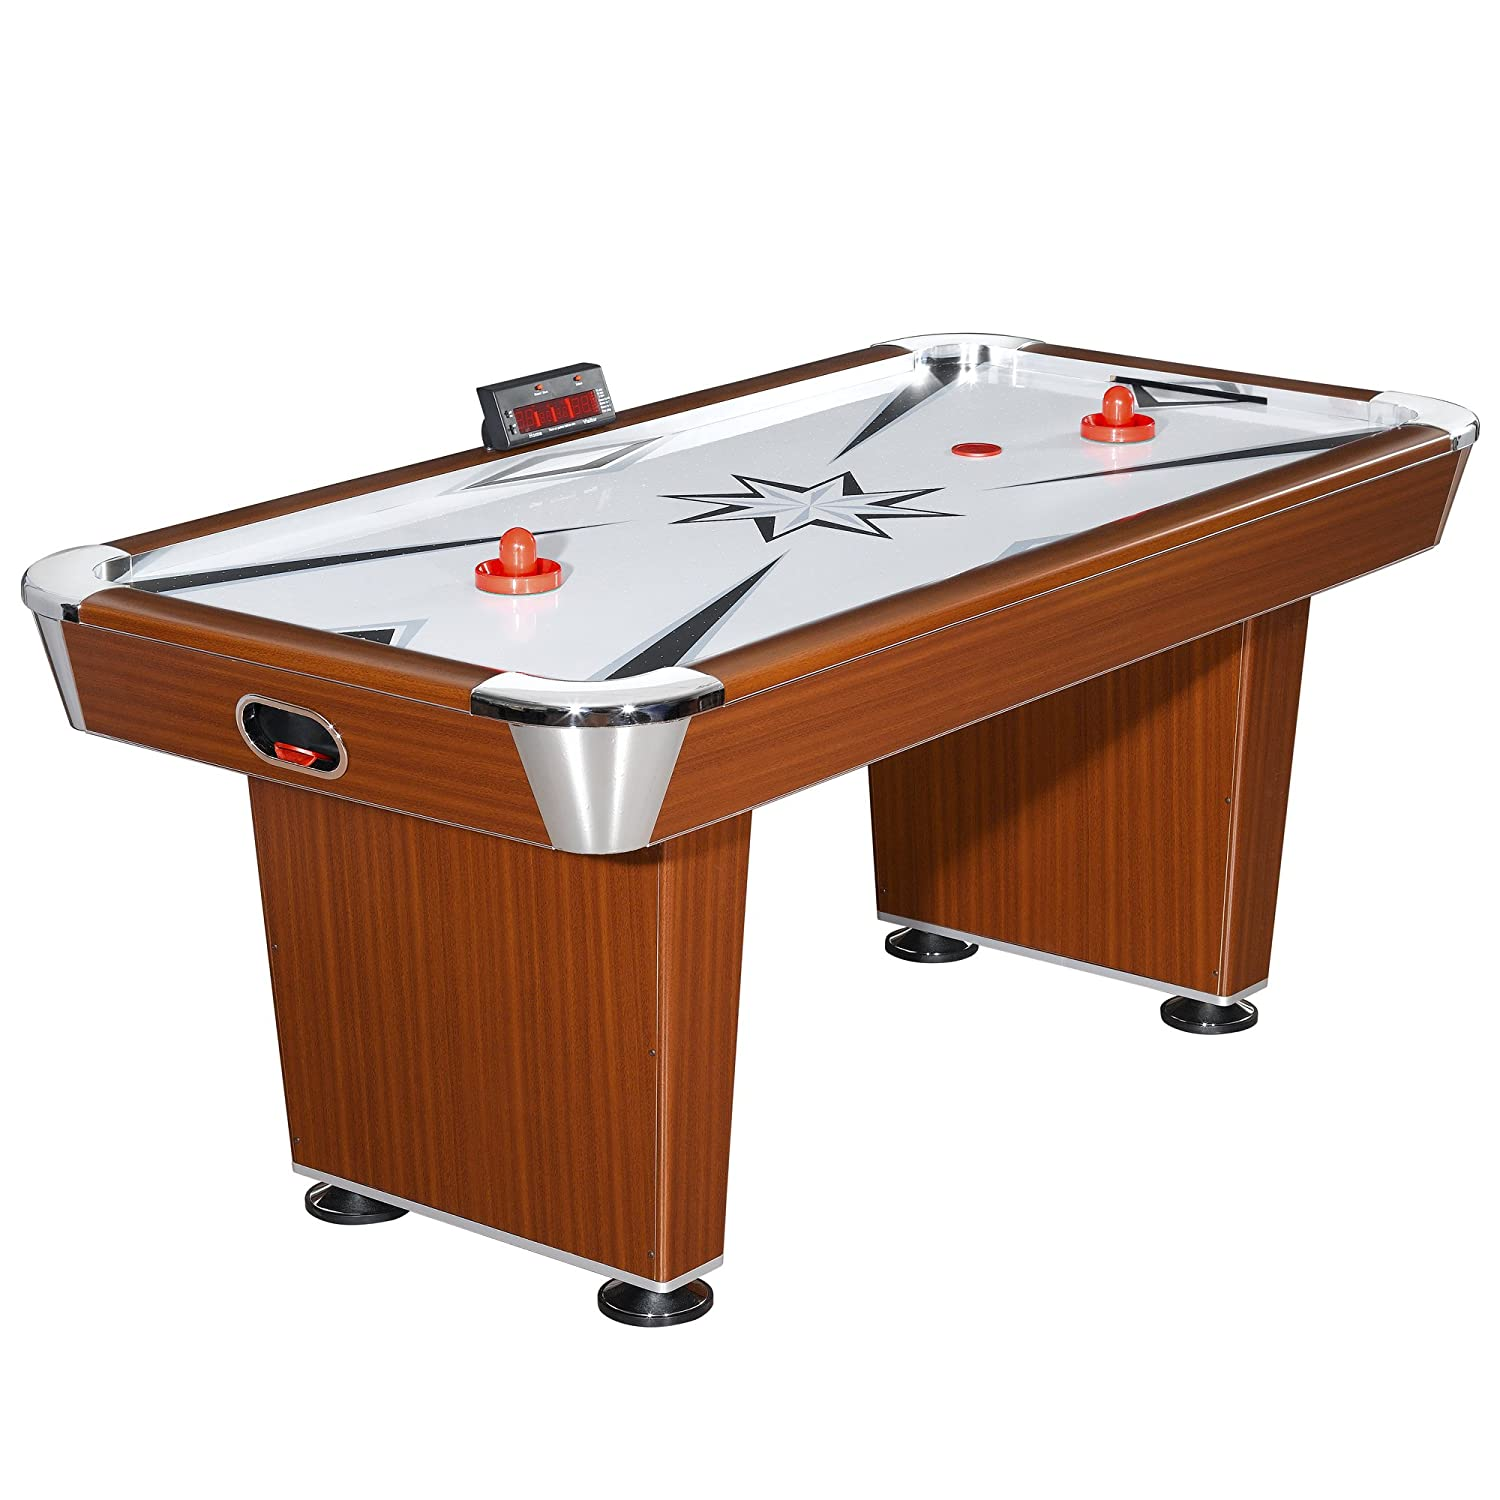 Amazon.com : Hathaway Midtown Air Hockey Table, Cherry Finish/Silver,  6 Feet : Air Hockey Equipment : Sports U0026 Outdoors